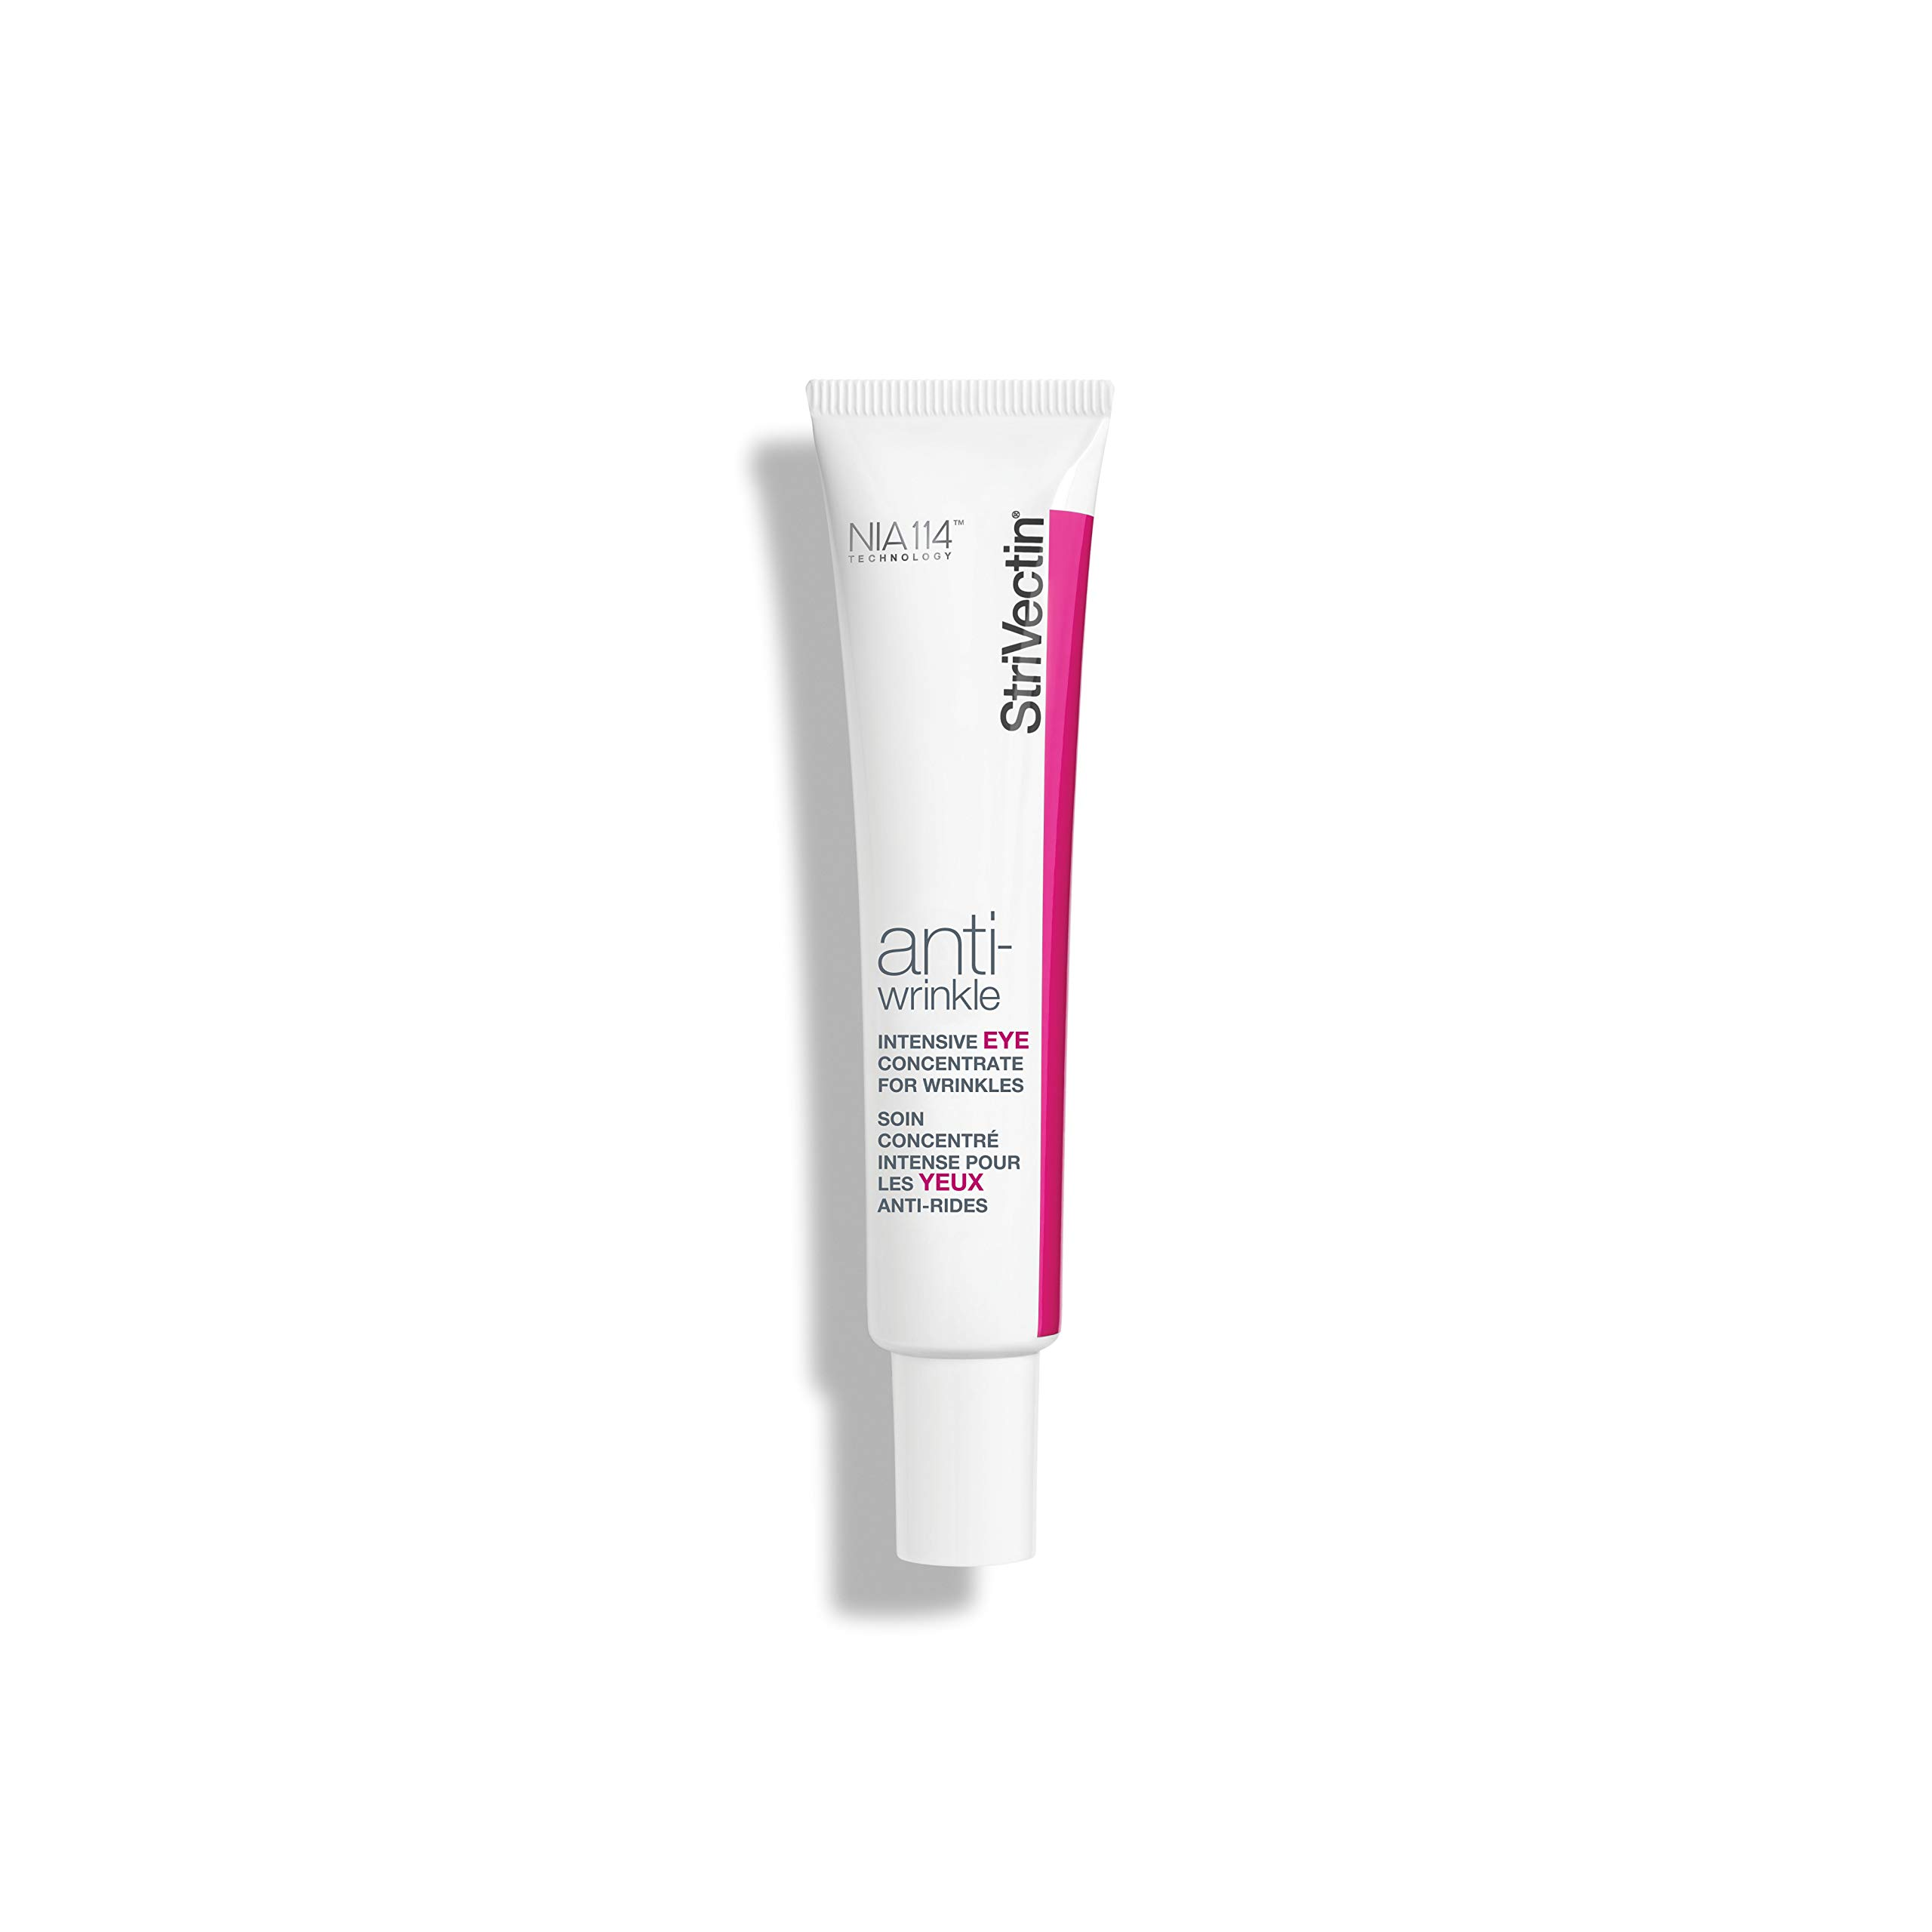 StriVectin Intensive Eye Concentrate for Wrinkles, 1 Fl Oz by StriVectin